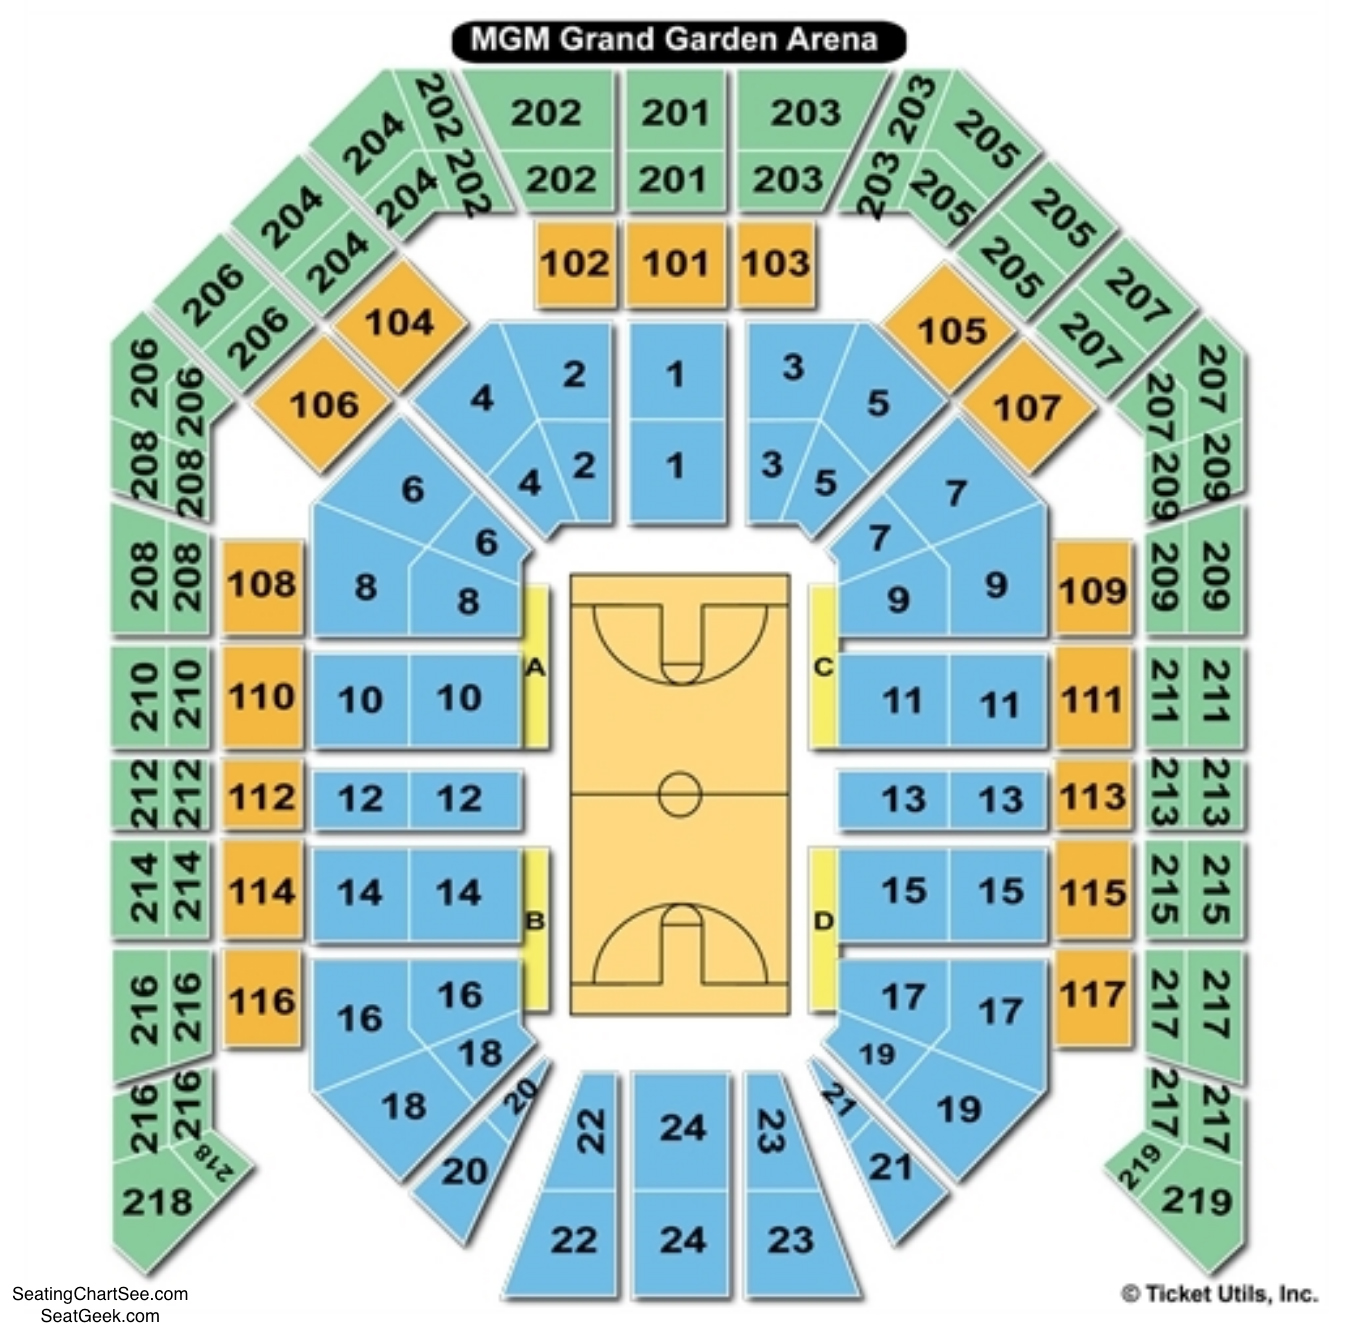 MGM Grand Garden Arena Basketball Seating Chart